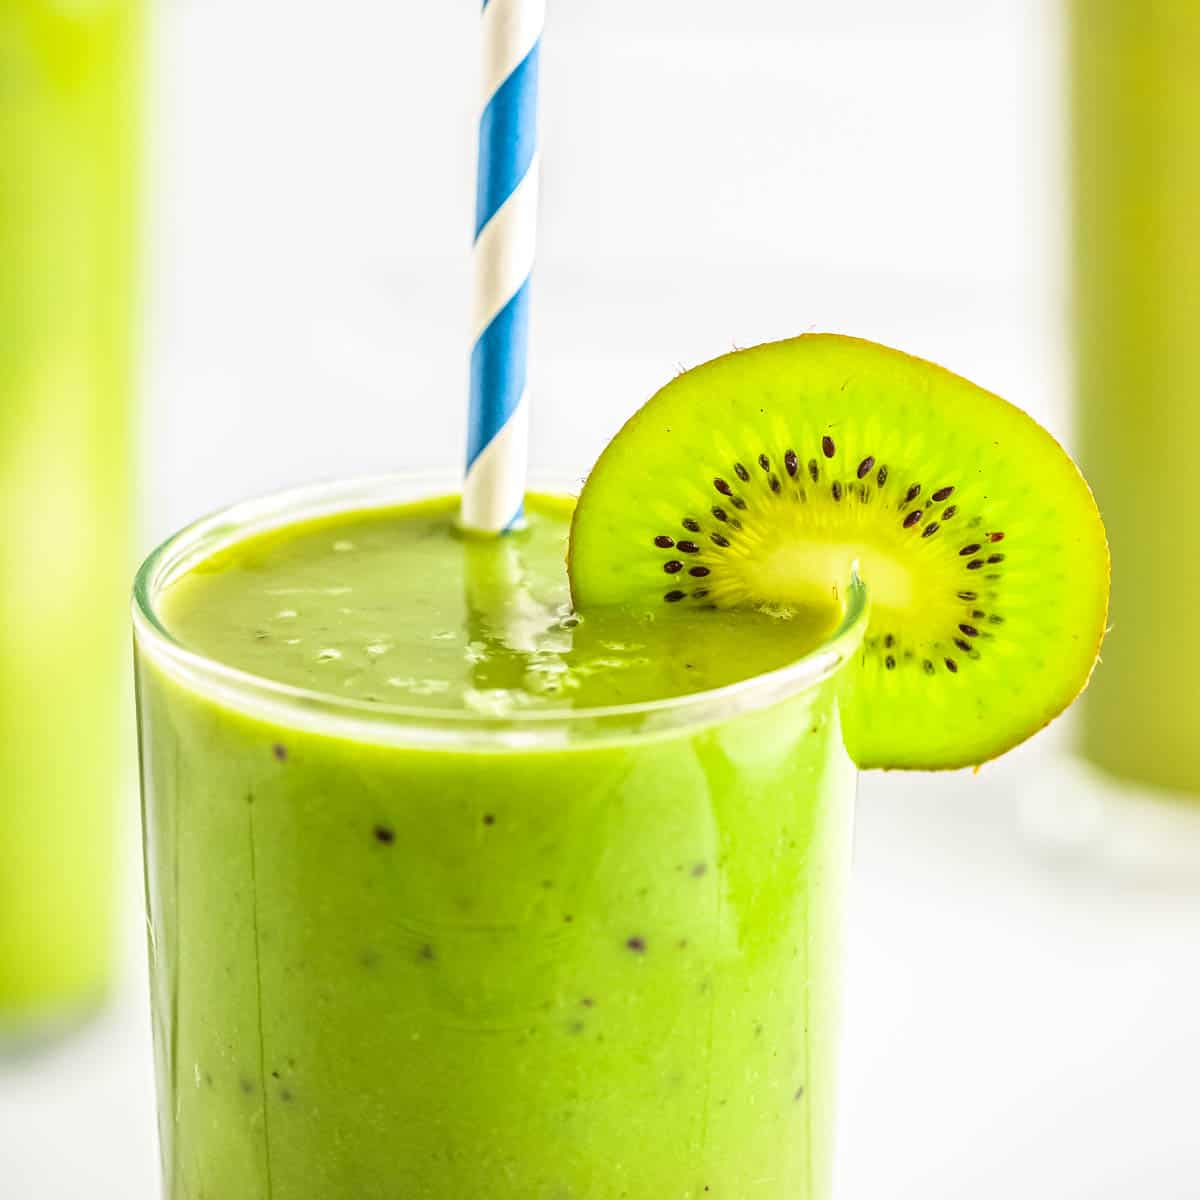 Close up shot of matcha green tea smoothie in a clear glass with a slice of kiwi and a straw with a white and green background.